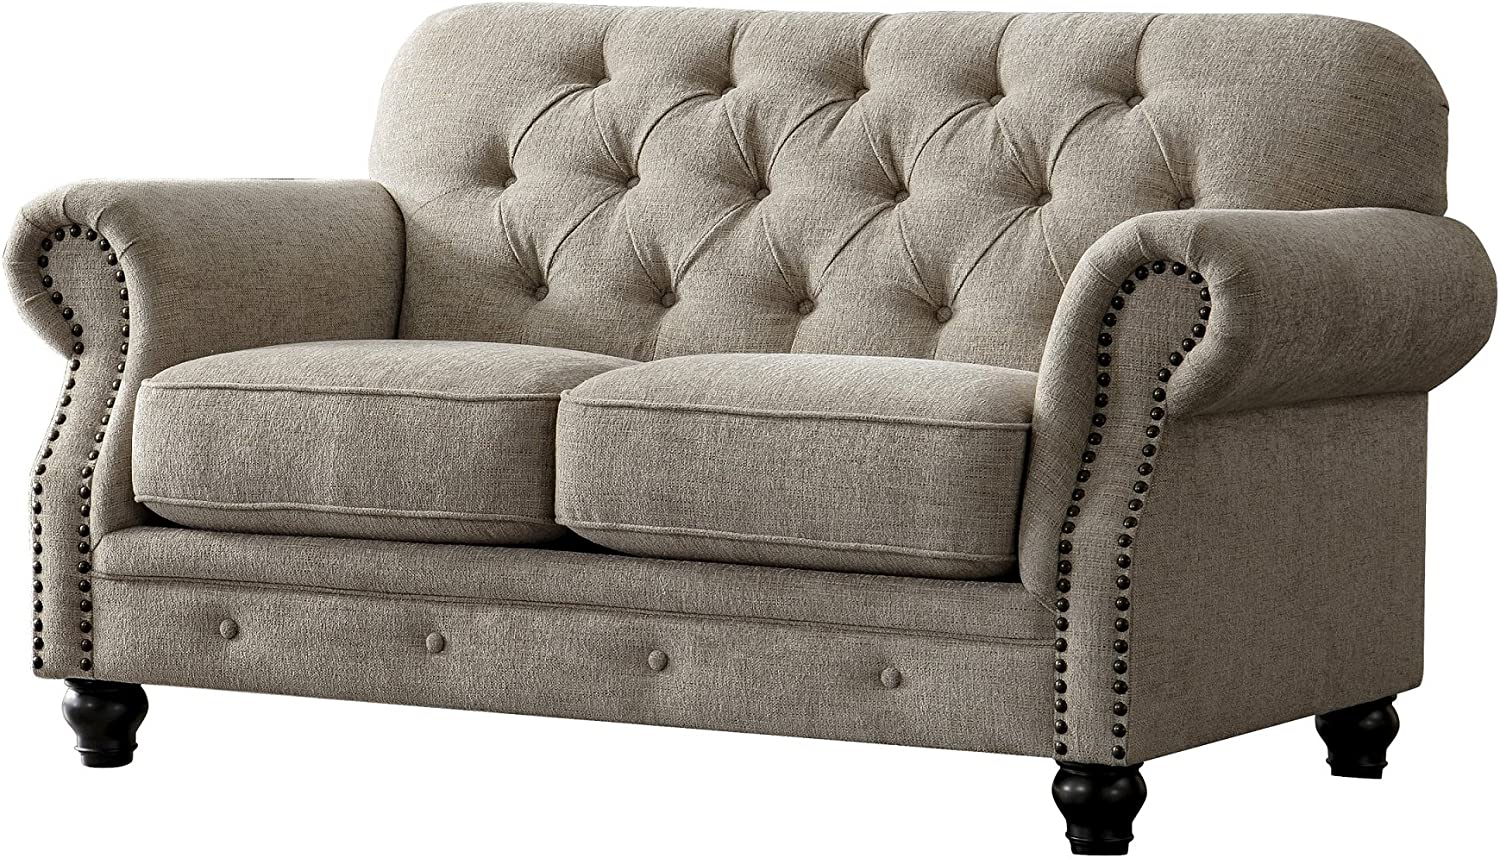 Acanva Collection Chesterfield Chenille Tufted Living Room Sofa 67 W Loveseat Almond Furniture Decor